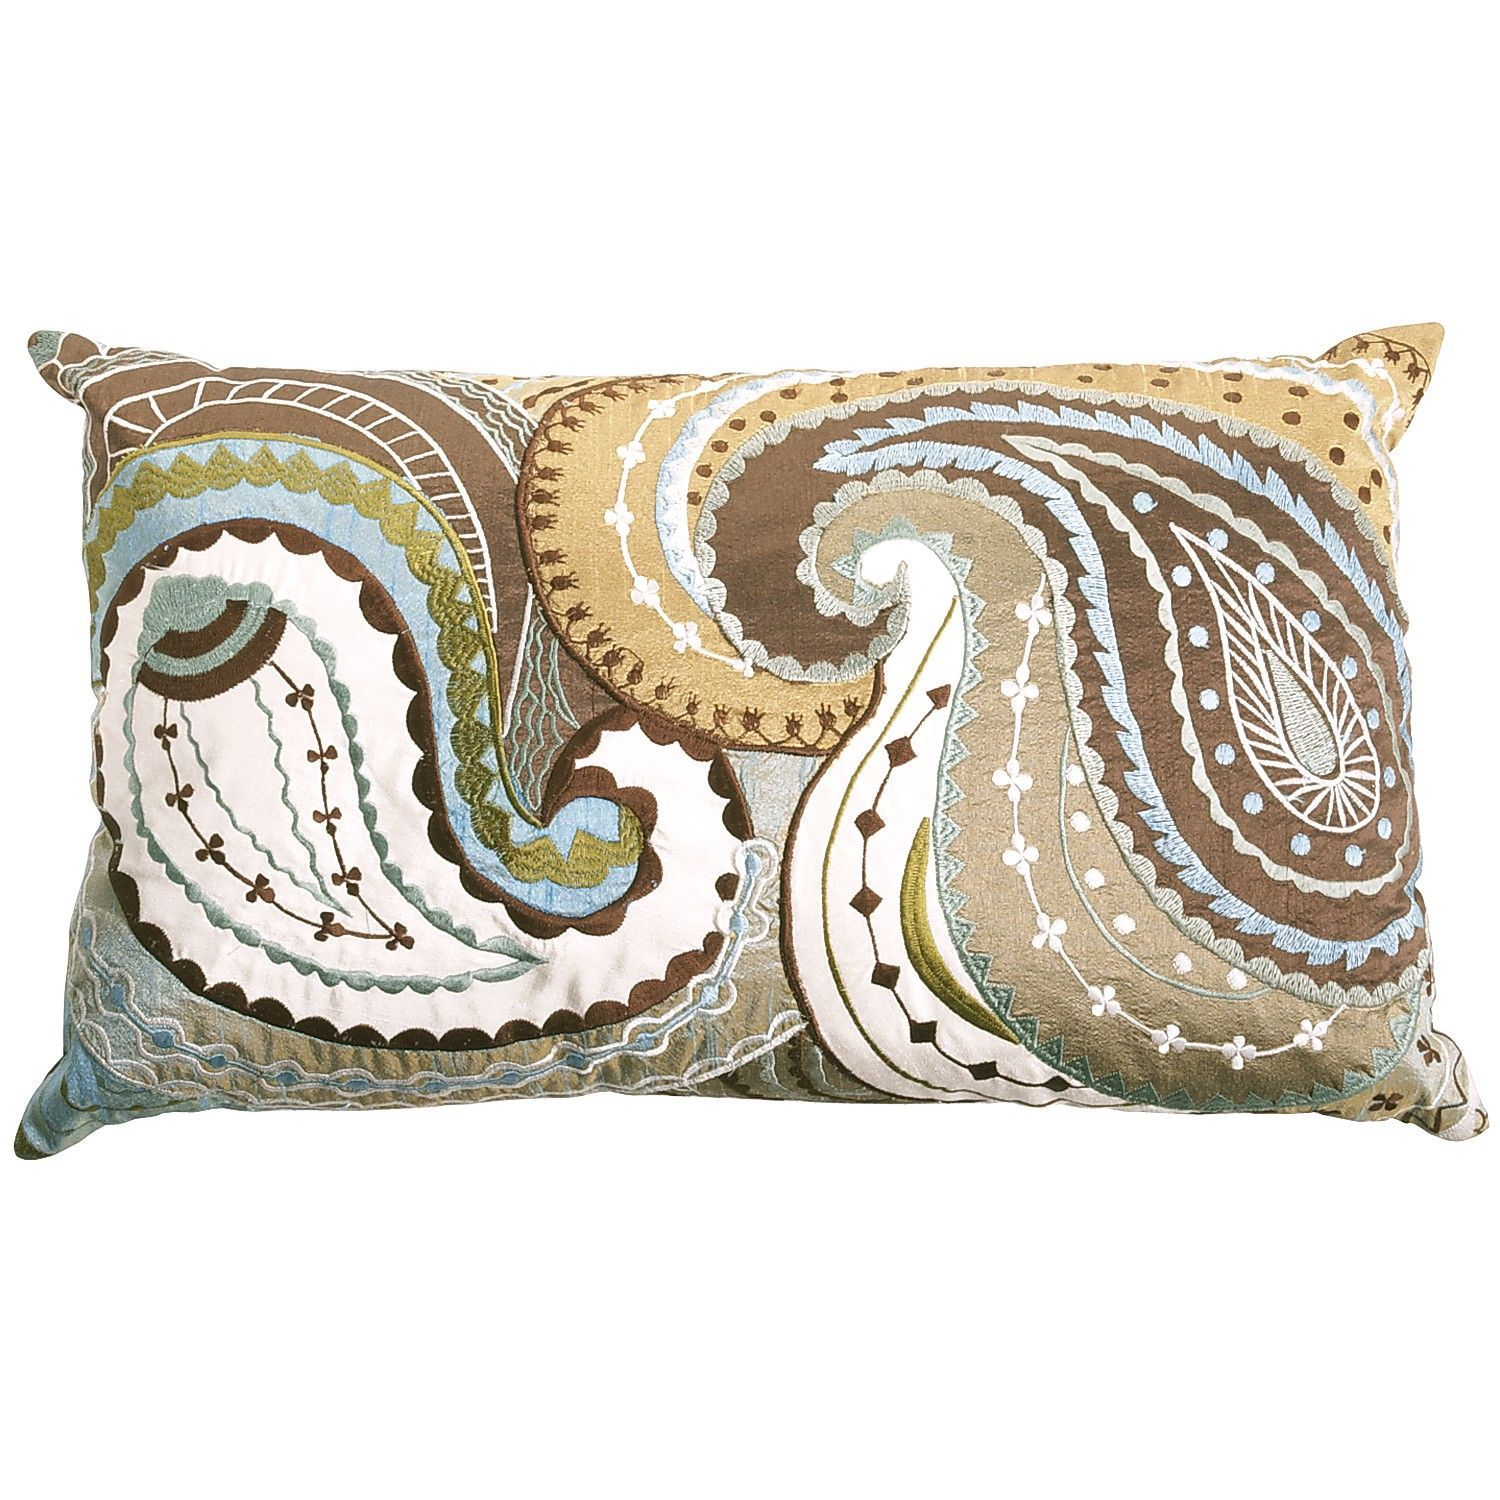 Embroidered Paisley Pillow - Blue - Pier1 US | living room ... on gold pillow ideas, striped pillow ideas, animal print pillow ideas, handmade pillow ideas, denim pillow ideas, flower pillow ideas, chenille pillow ideas, monogram pillow ideas, decorative pillow ideas, modern pillow ideas, pink pillow ideas, knitted pillow ideas, fleece pillow ideas, sewn pillow ideas, crochet pillow ideas, elegant pillow ideas, pillow cover ideas, bath pillow ideas, felt pillow ideas, stitched pillow ideas,